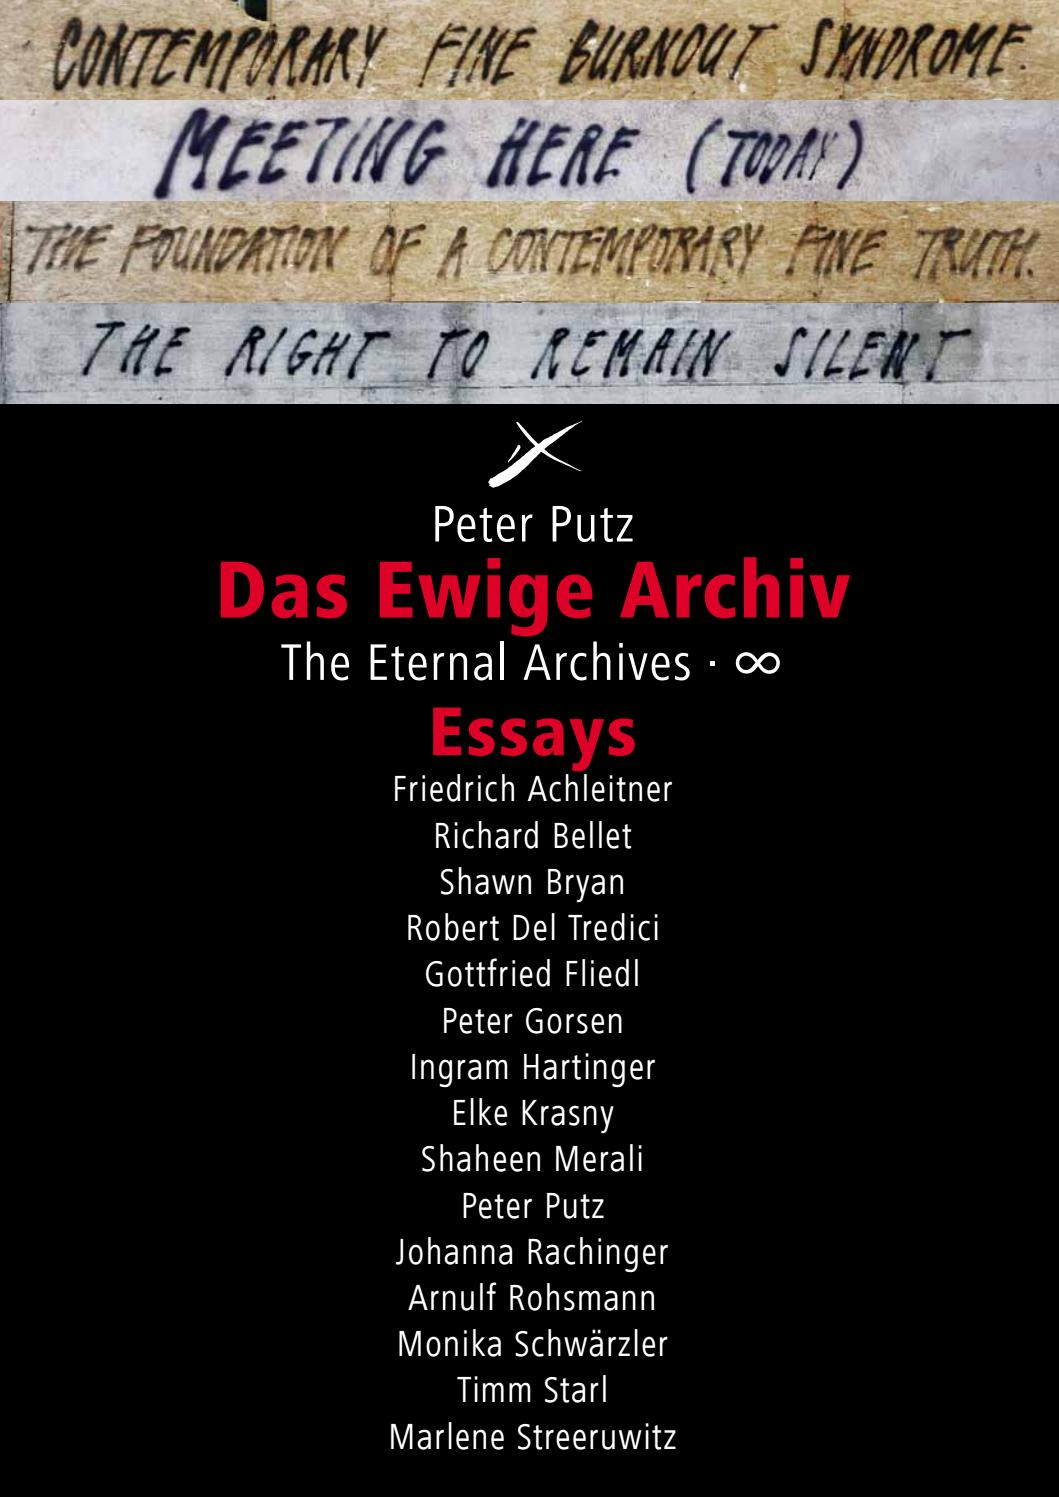 Essays: Das Ewige Archiv · The Eternal Archives (v_03) by archiv001 ...